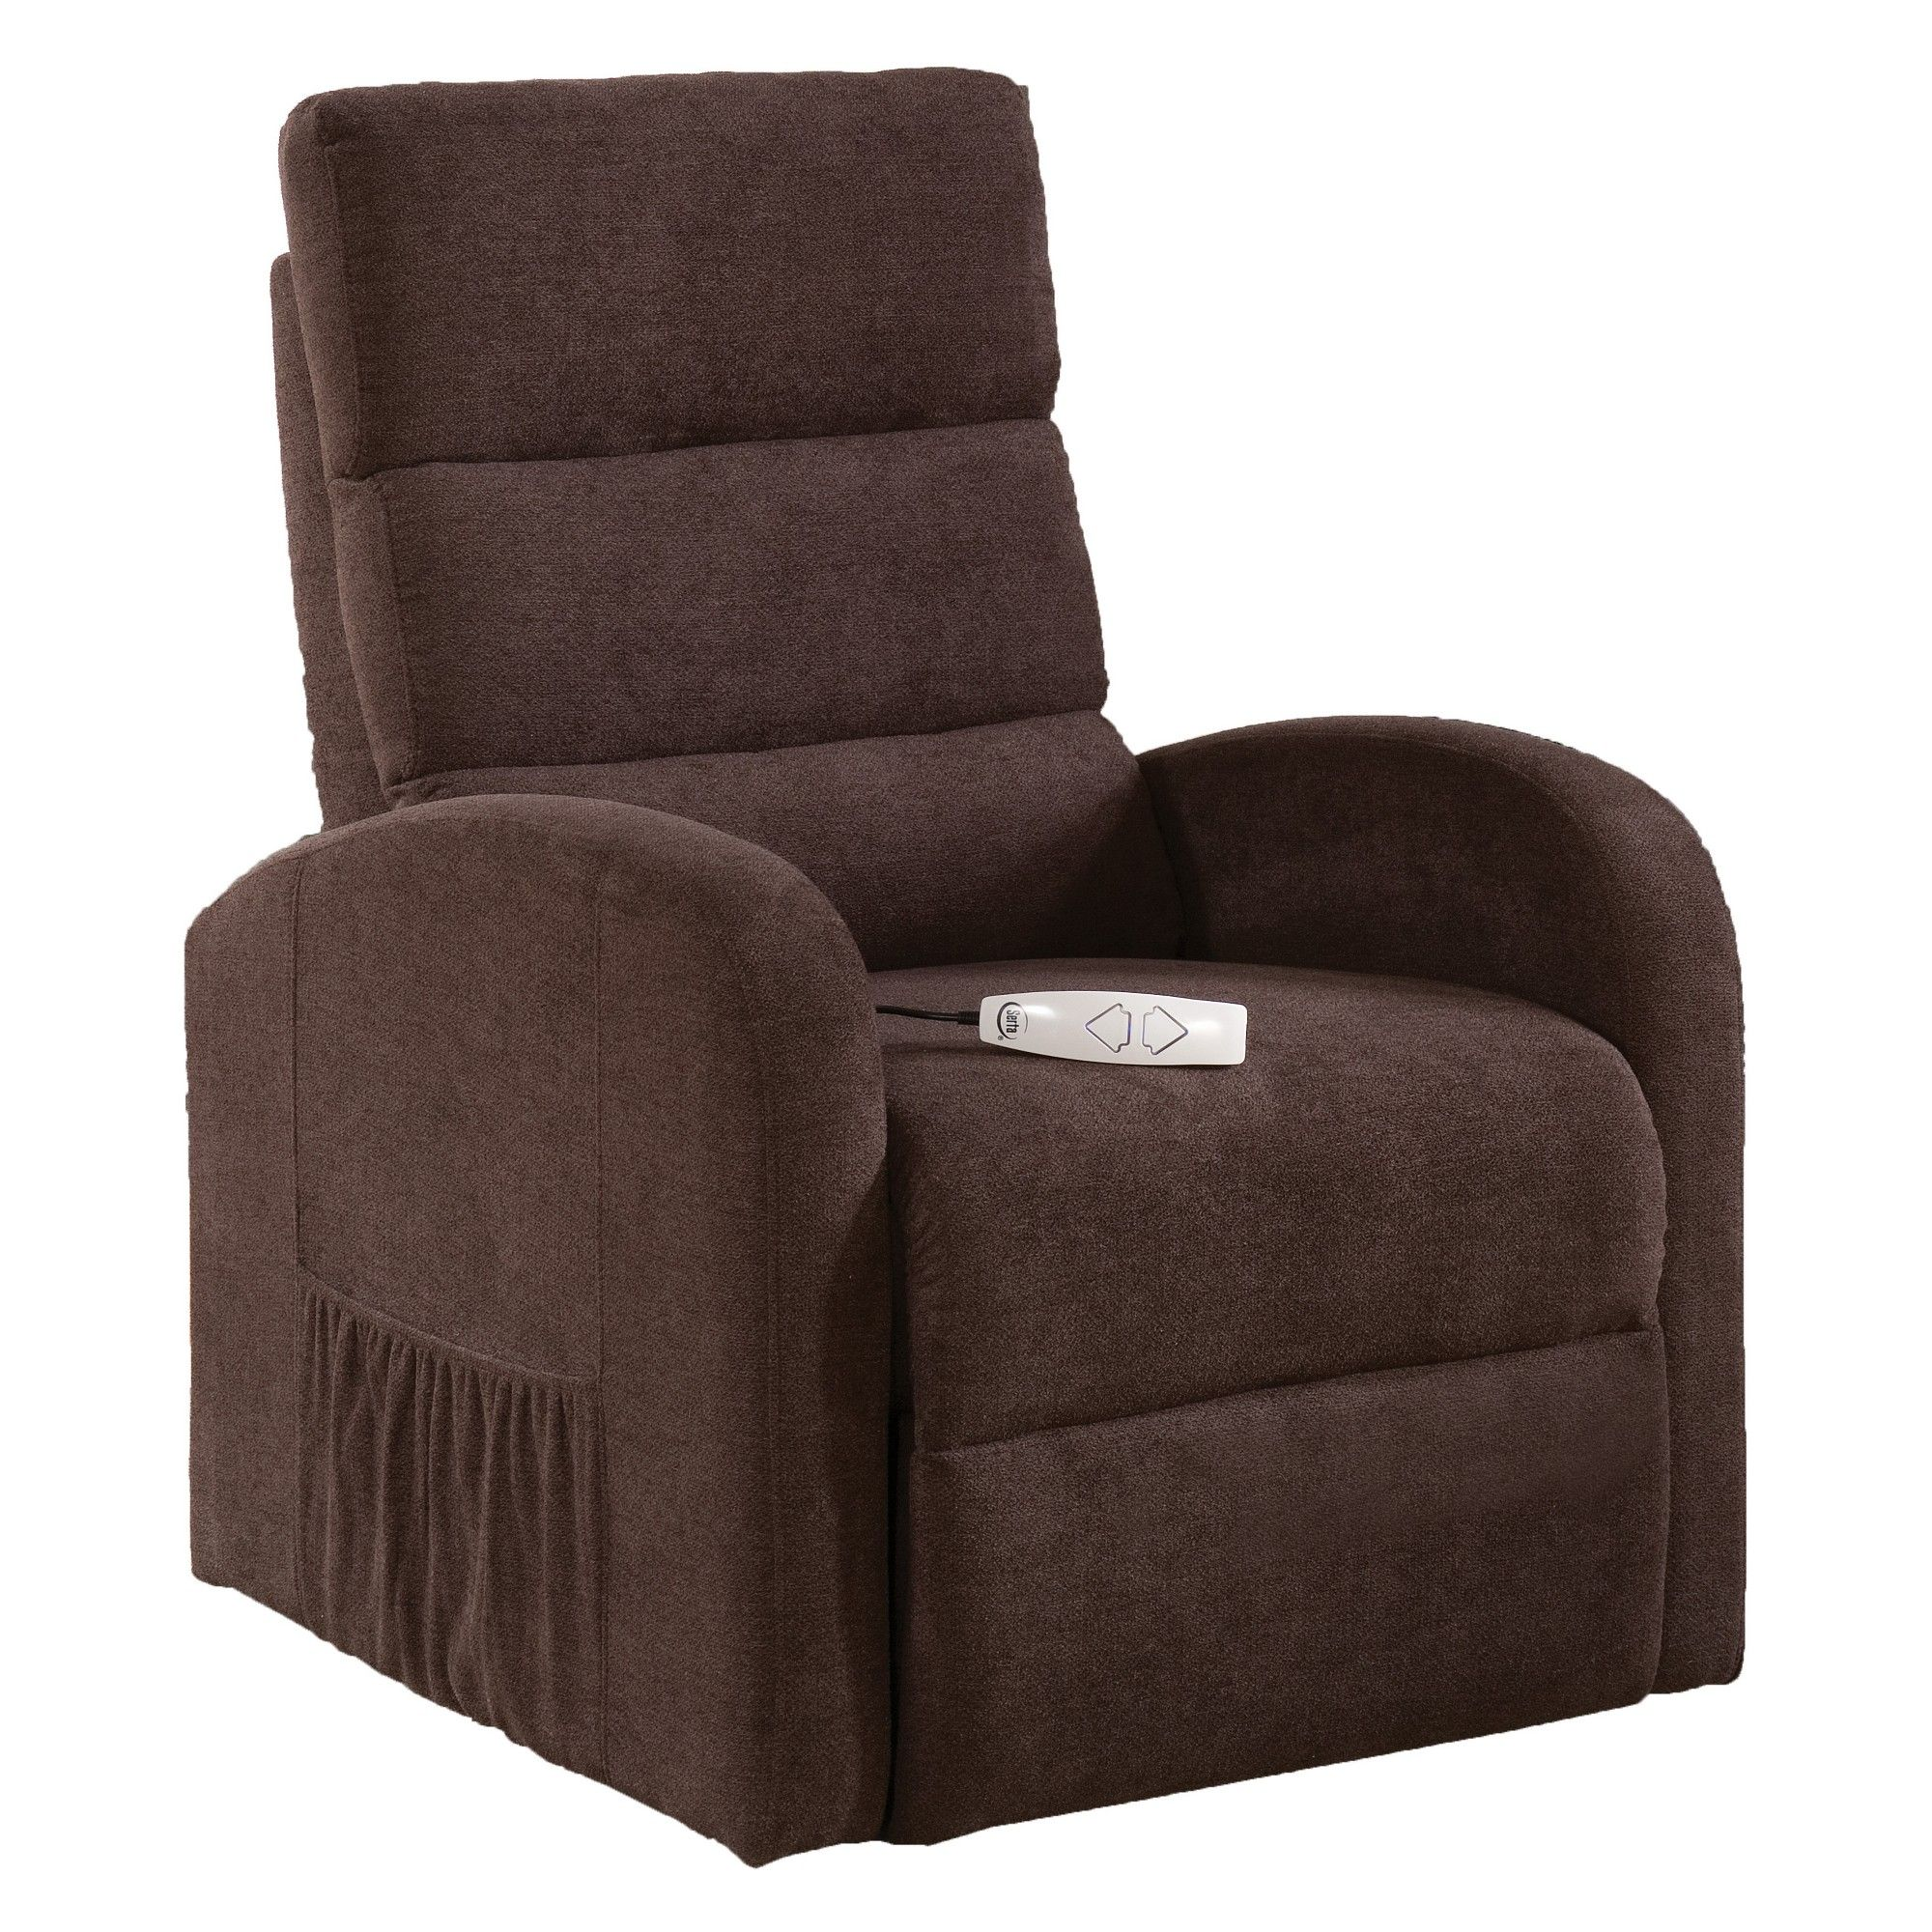 Serta Norton Comfort Lift Recliner Java, Brown